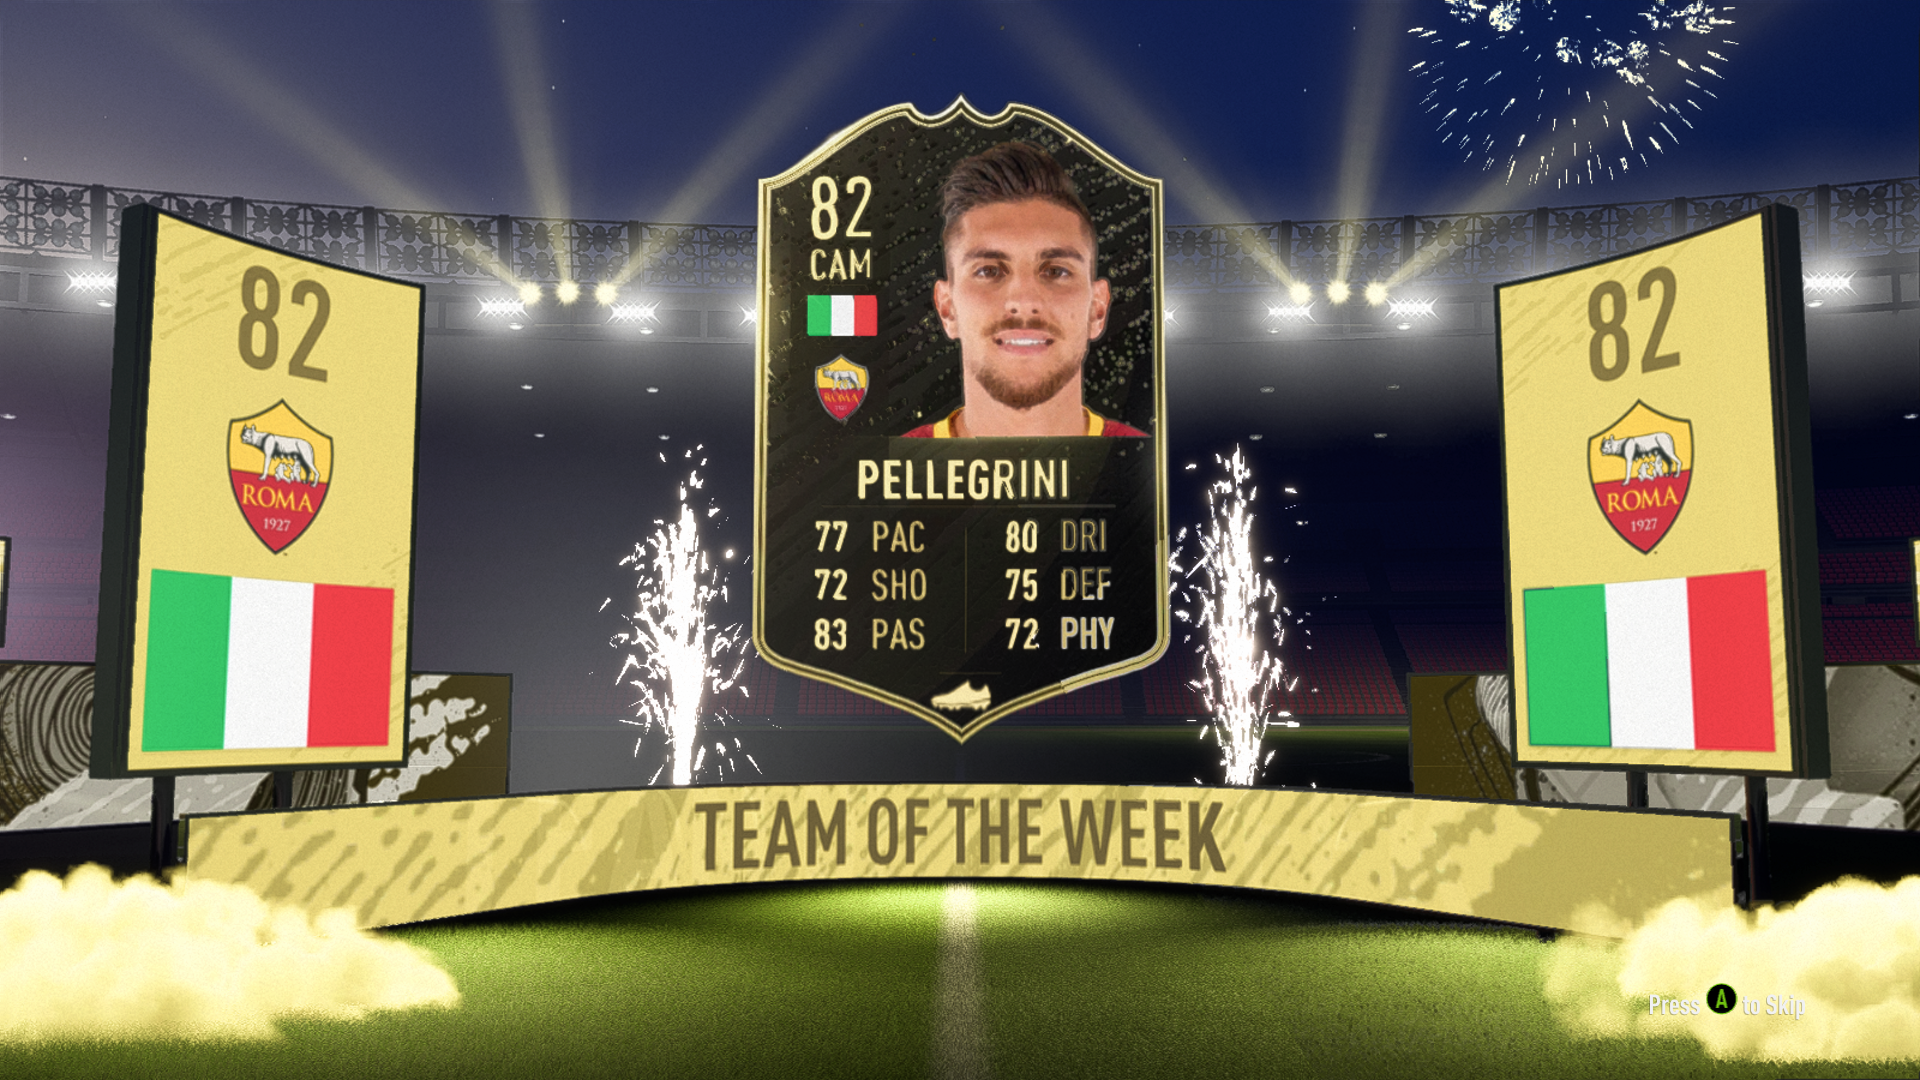 TOTW from a free pack